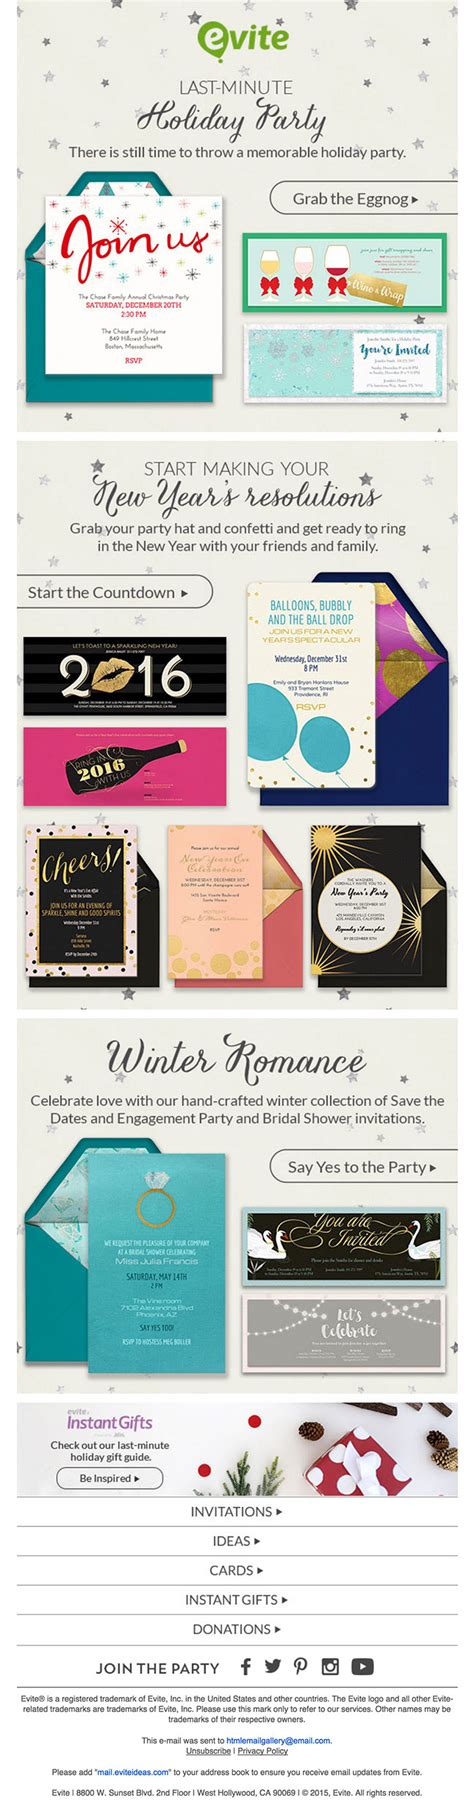 email invitation design inspiration creative emails html email gallery